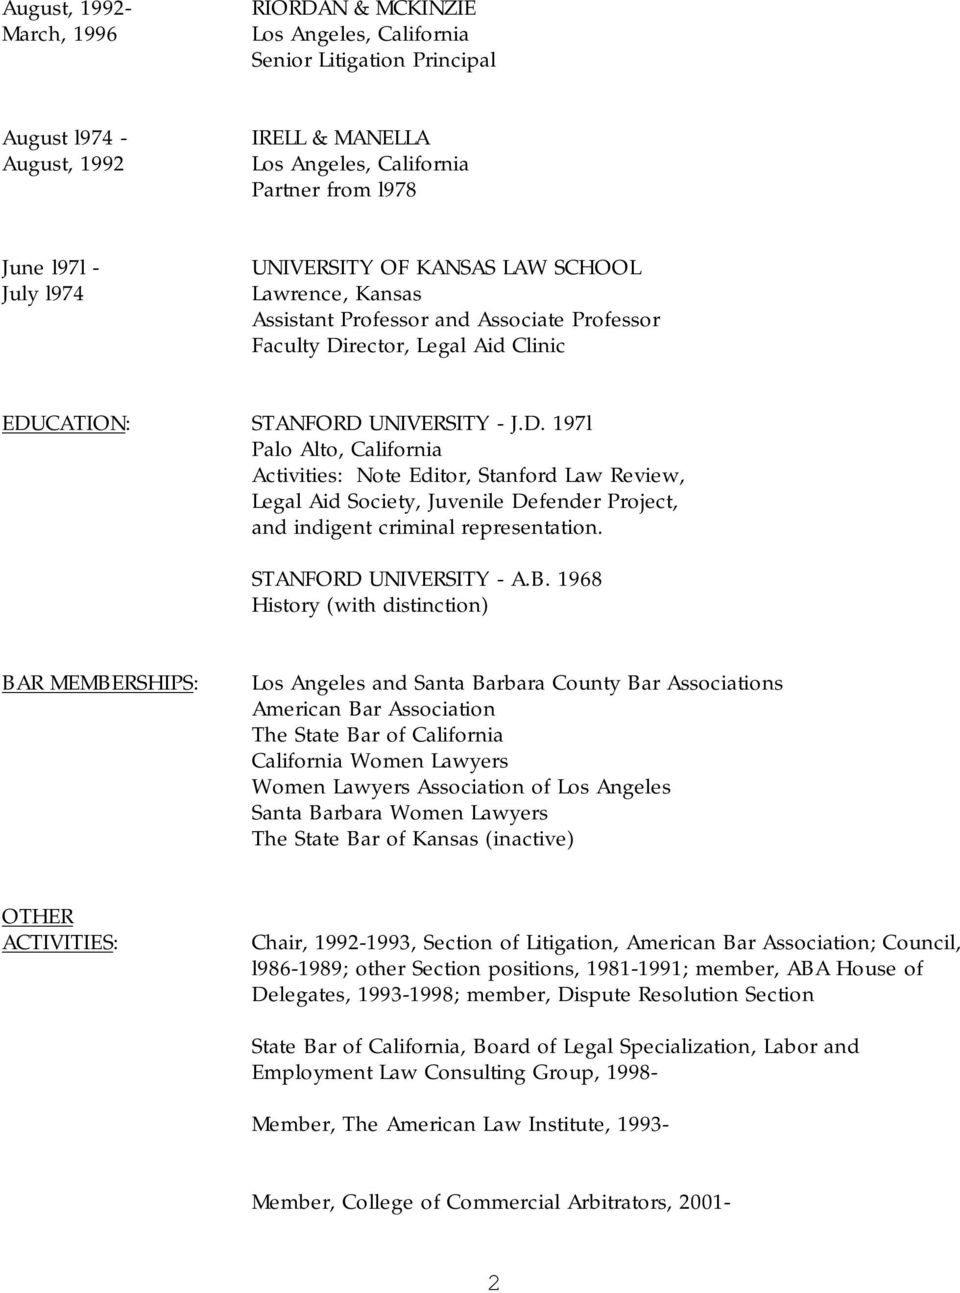 rector, Legal Aid Clinic EDUCATION: STANFORD UNIVERSITY - J.D. 197l Palo Alto, California Activities: Note Editor, Stanford Law Review, Legal Aid Society, Juvenile Defender Project, and indigent criminal representation.